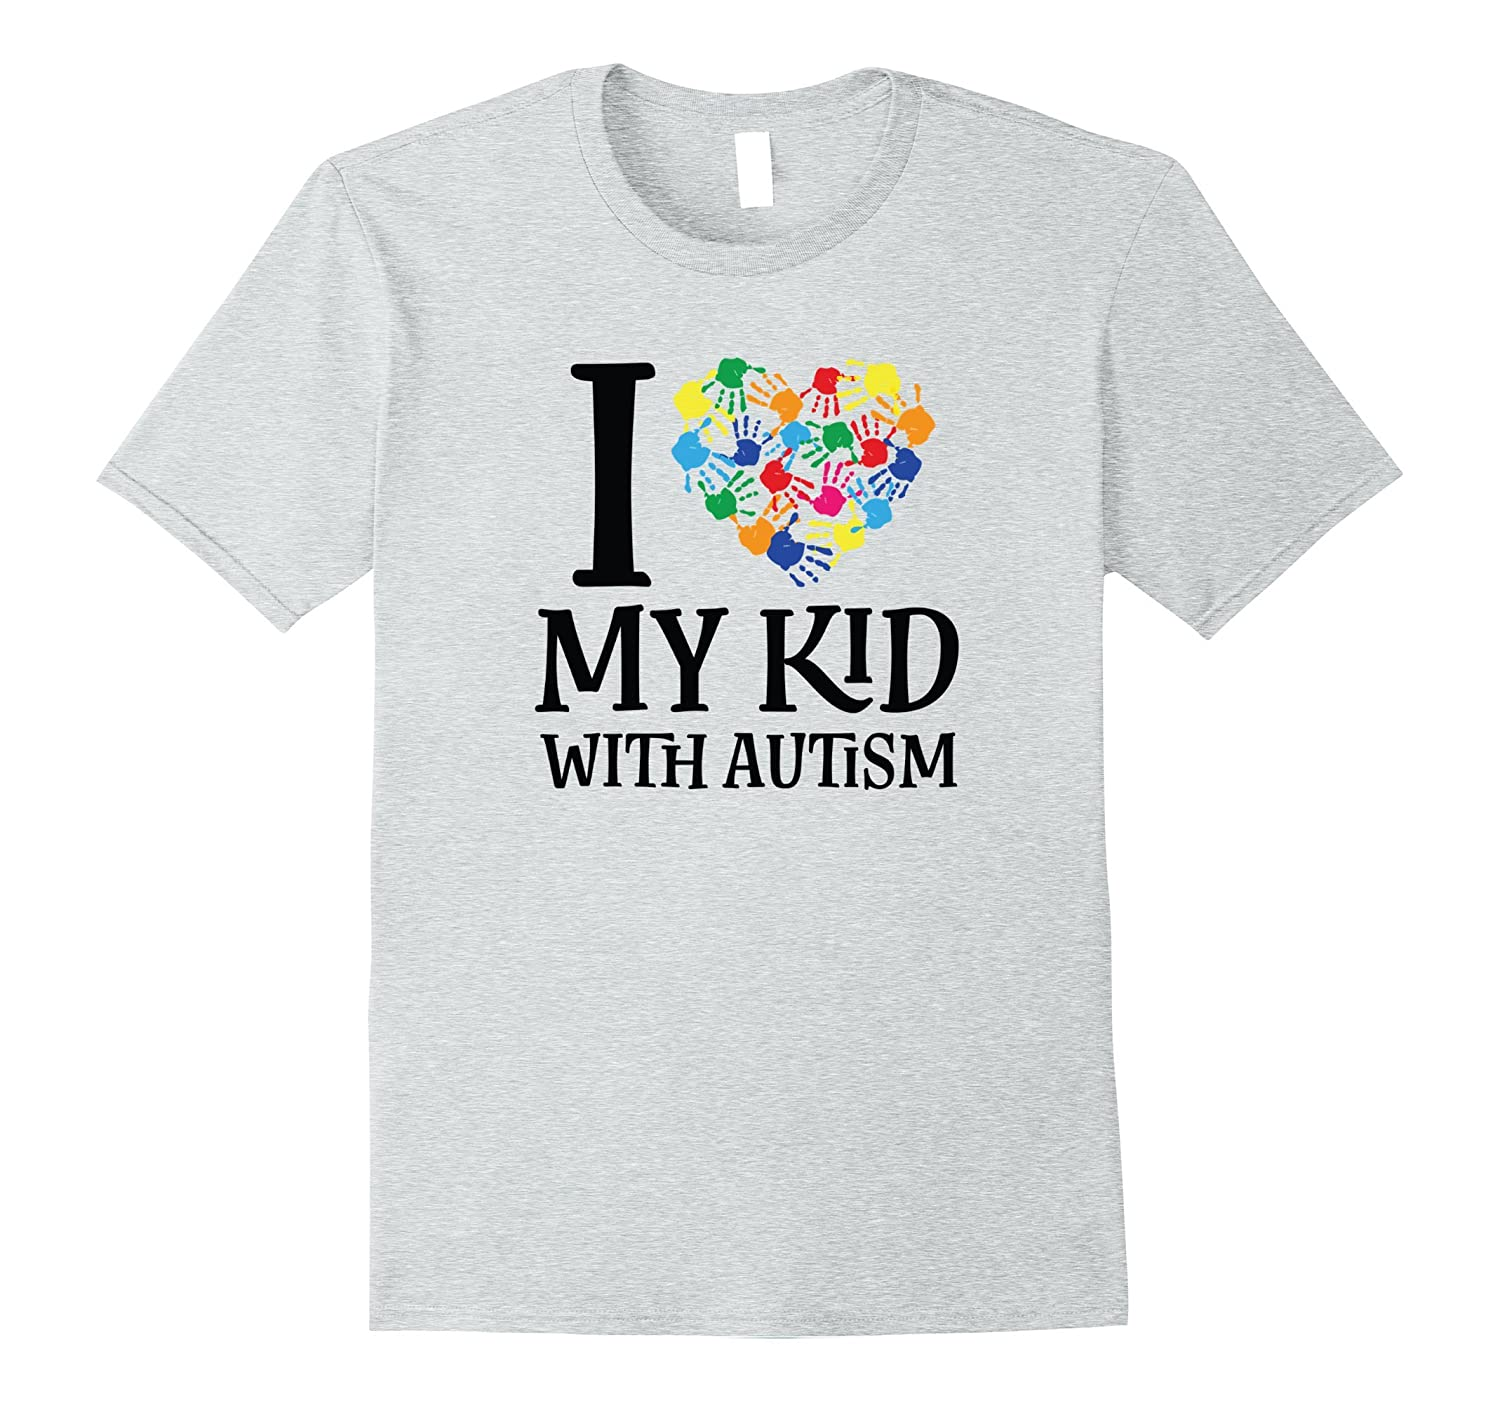 Autism Awareness Shirt I Love My Kid-T-Shirt